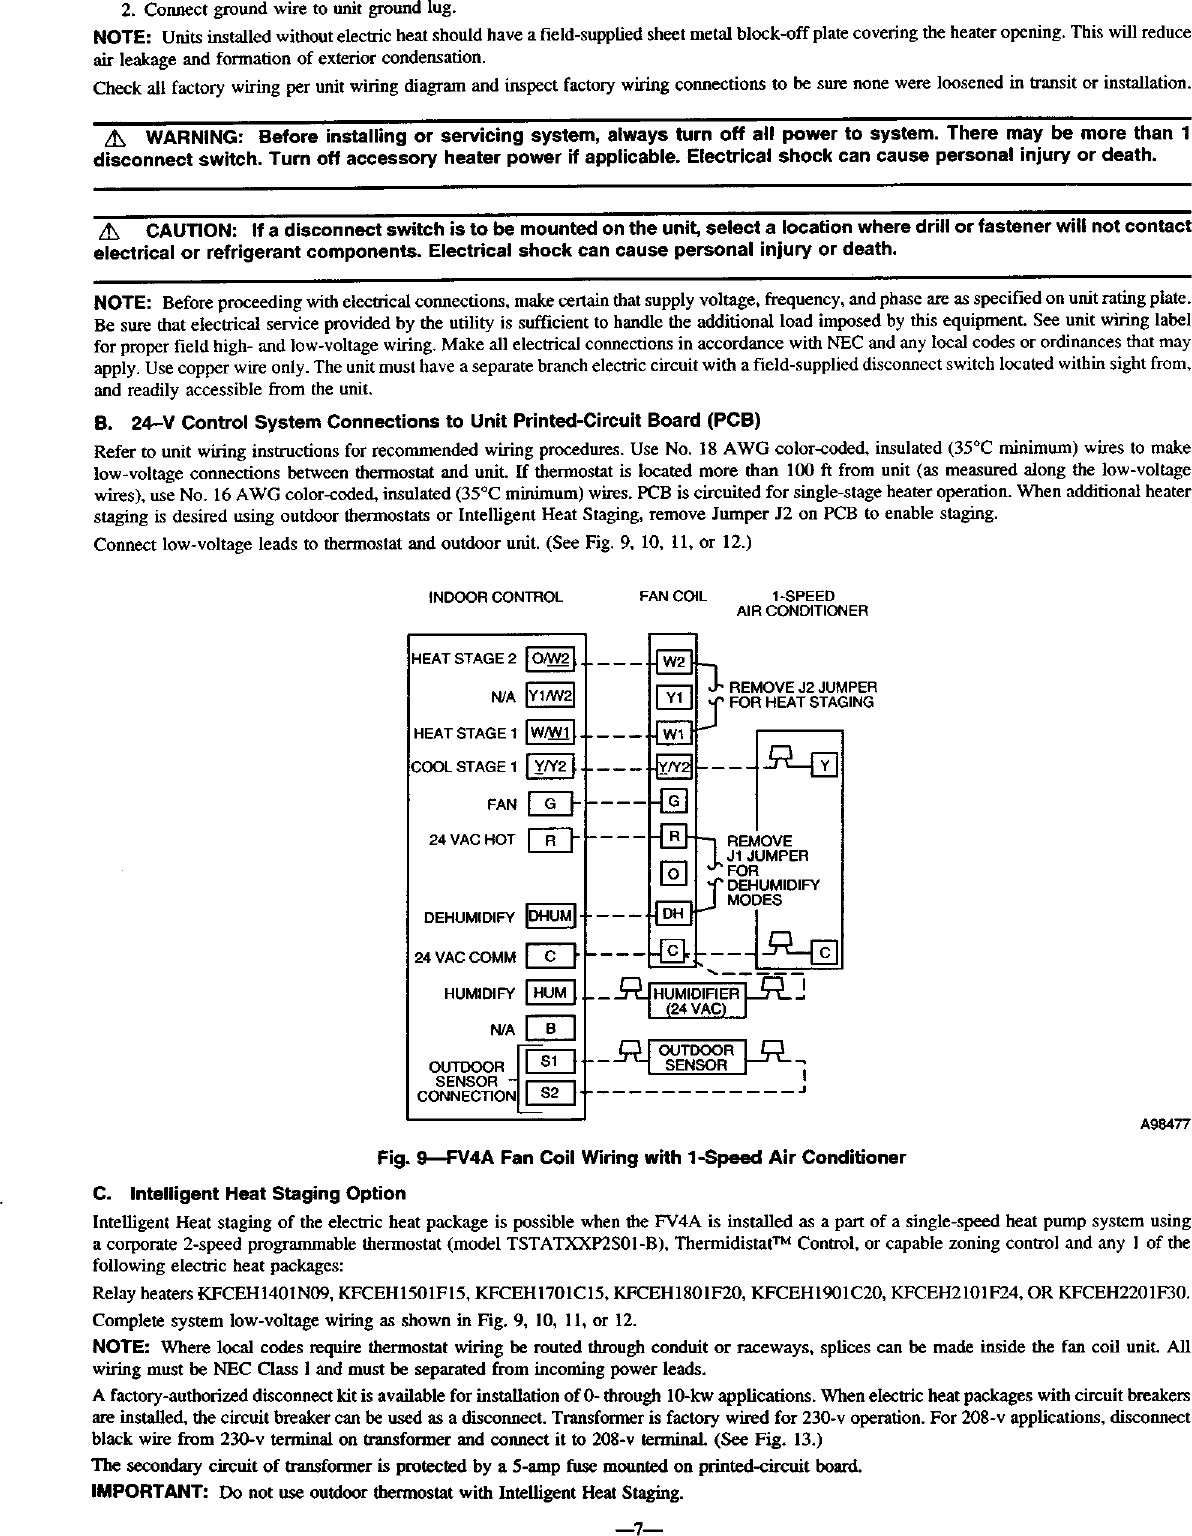 Condensation Pump Wiring Diagram With Fan Coil Unit | Wiring